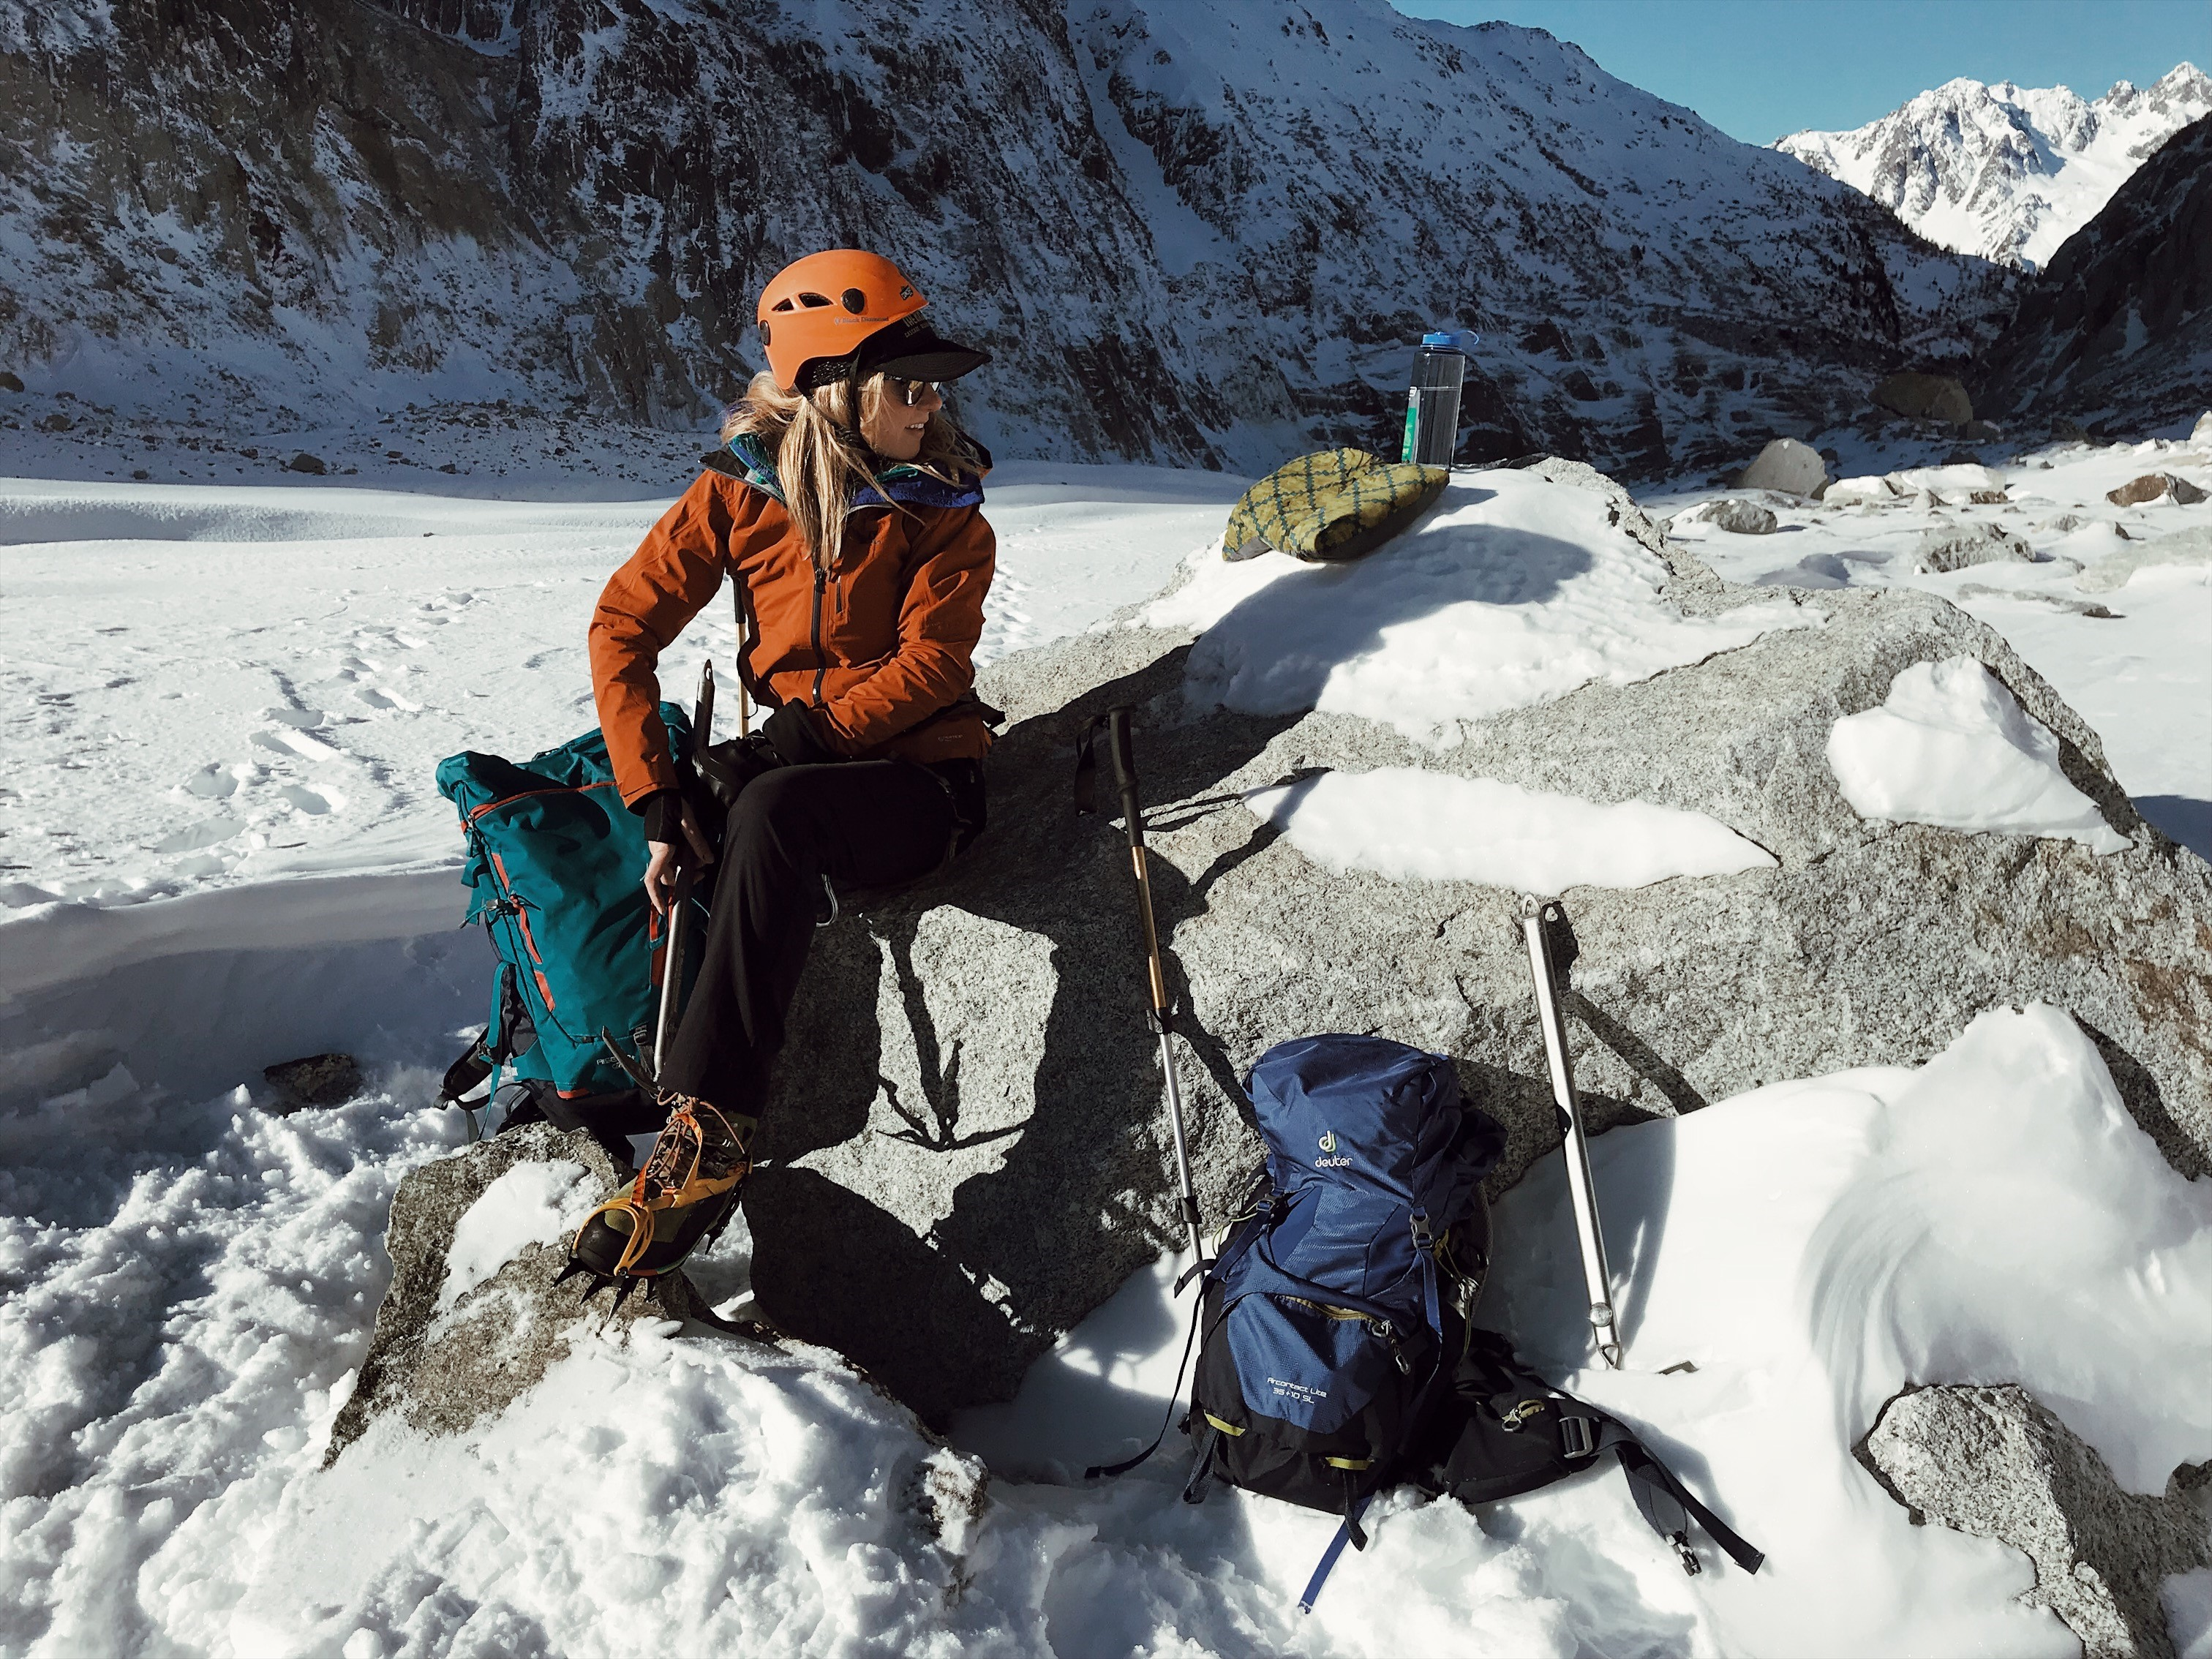 Tips for mountaineering